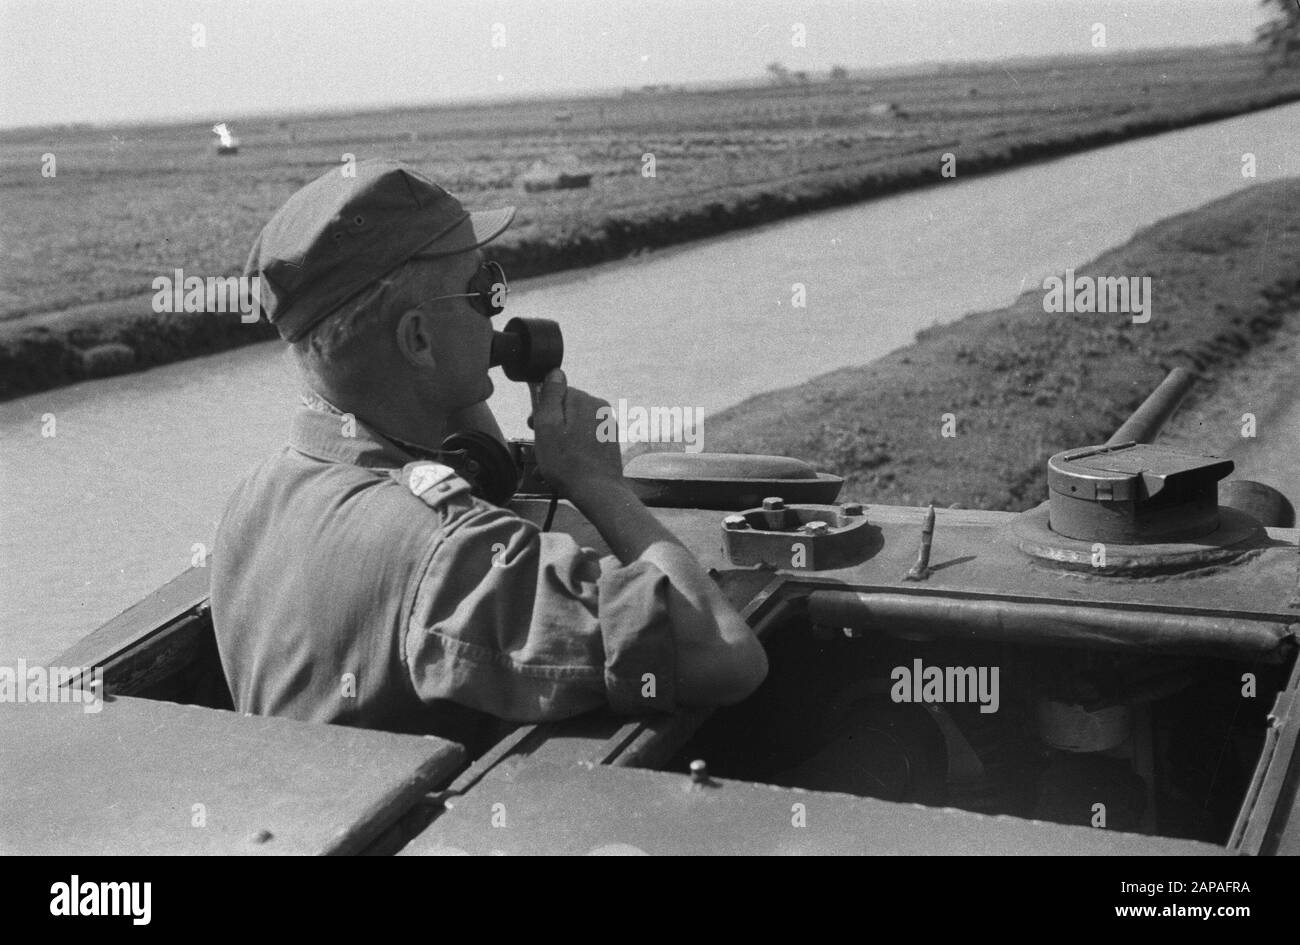 Action Cheribon Description: Cheribon: a Humber of the 6th Squadron Armored Cars in action during the advance to Cheribon. The commander of the vehicle speaks by a microphone Date: 26 July 1947 Location: Cheribon, Indonesia, Java, Dutch East Indies Stock Photo